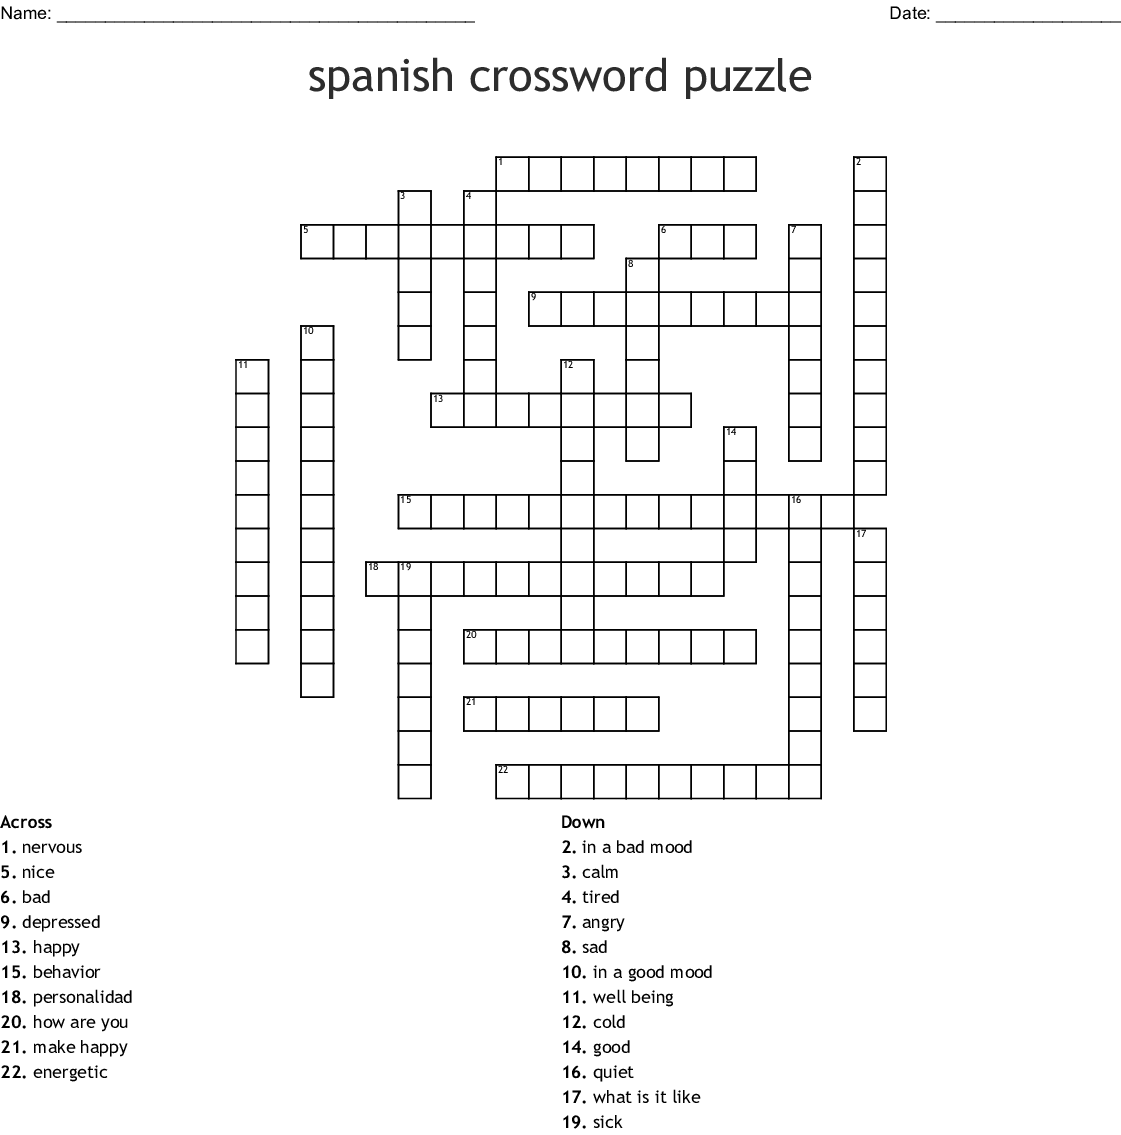 Spanish Crossword Puzzle